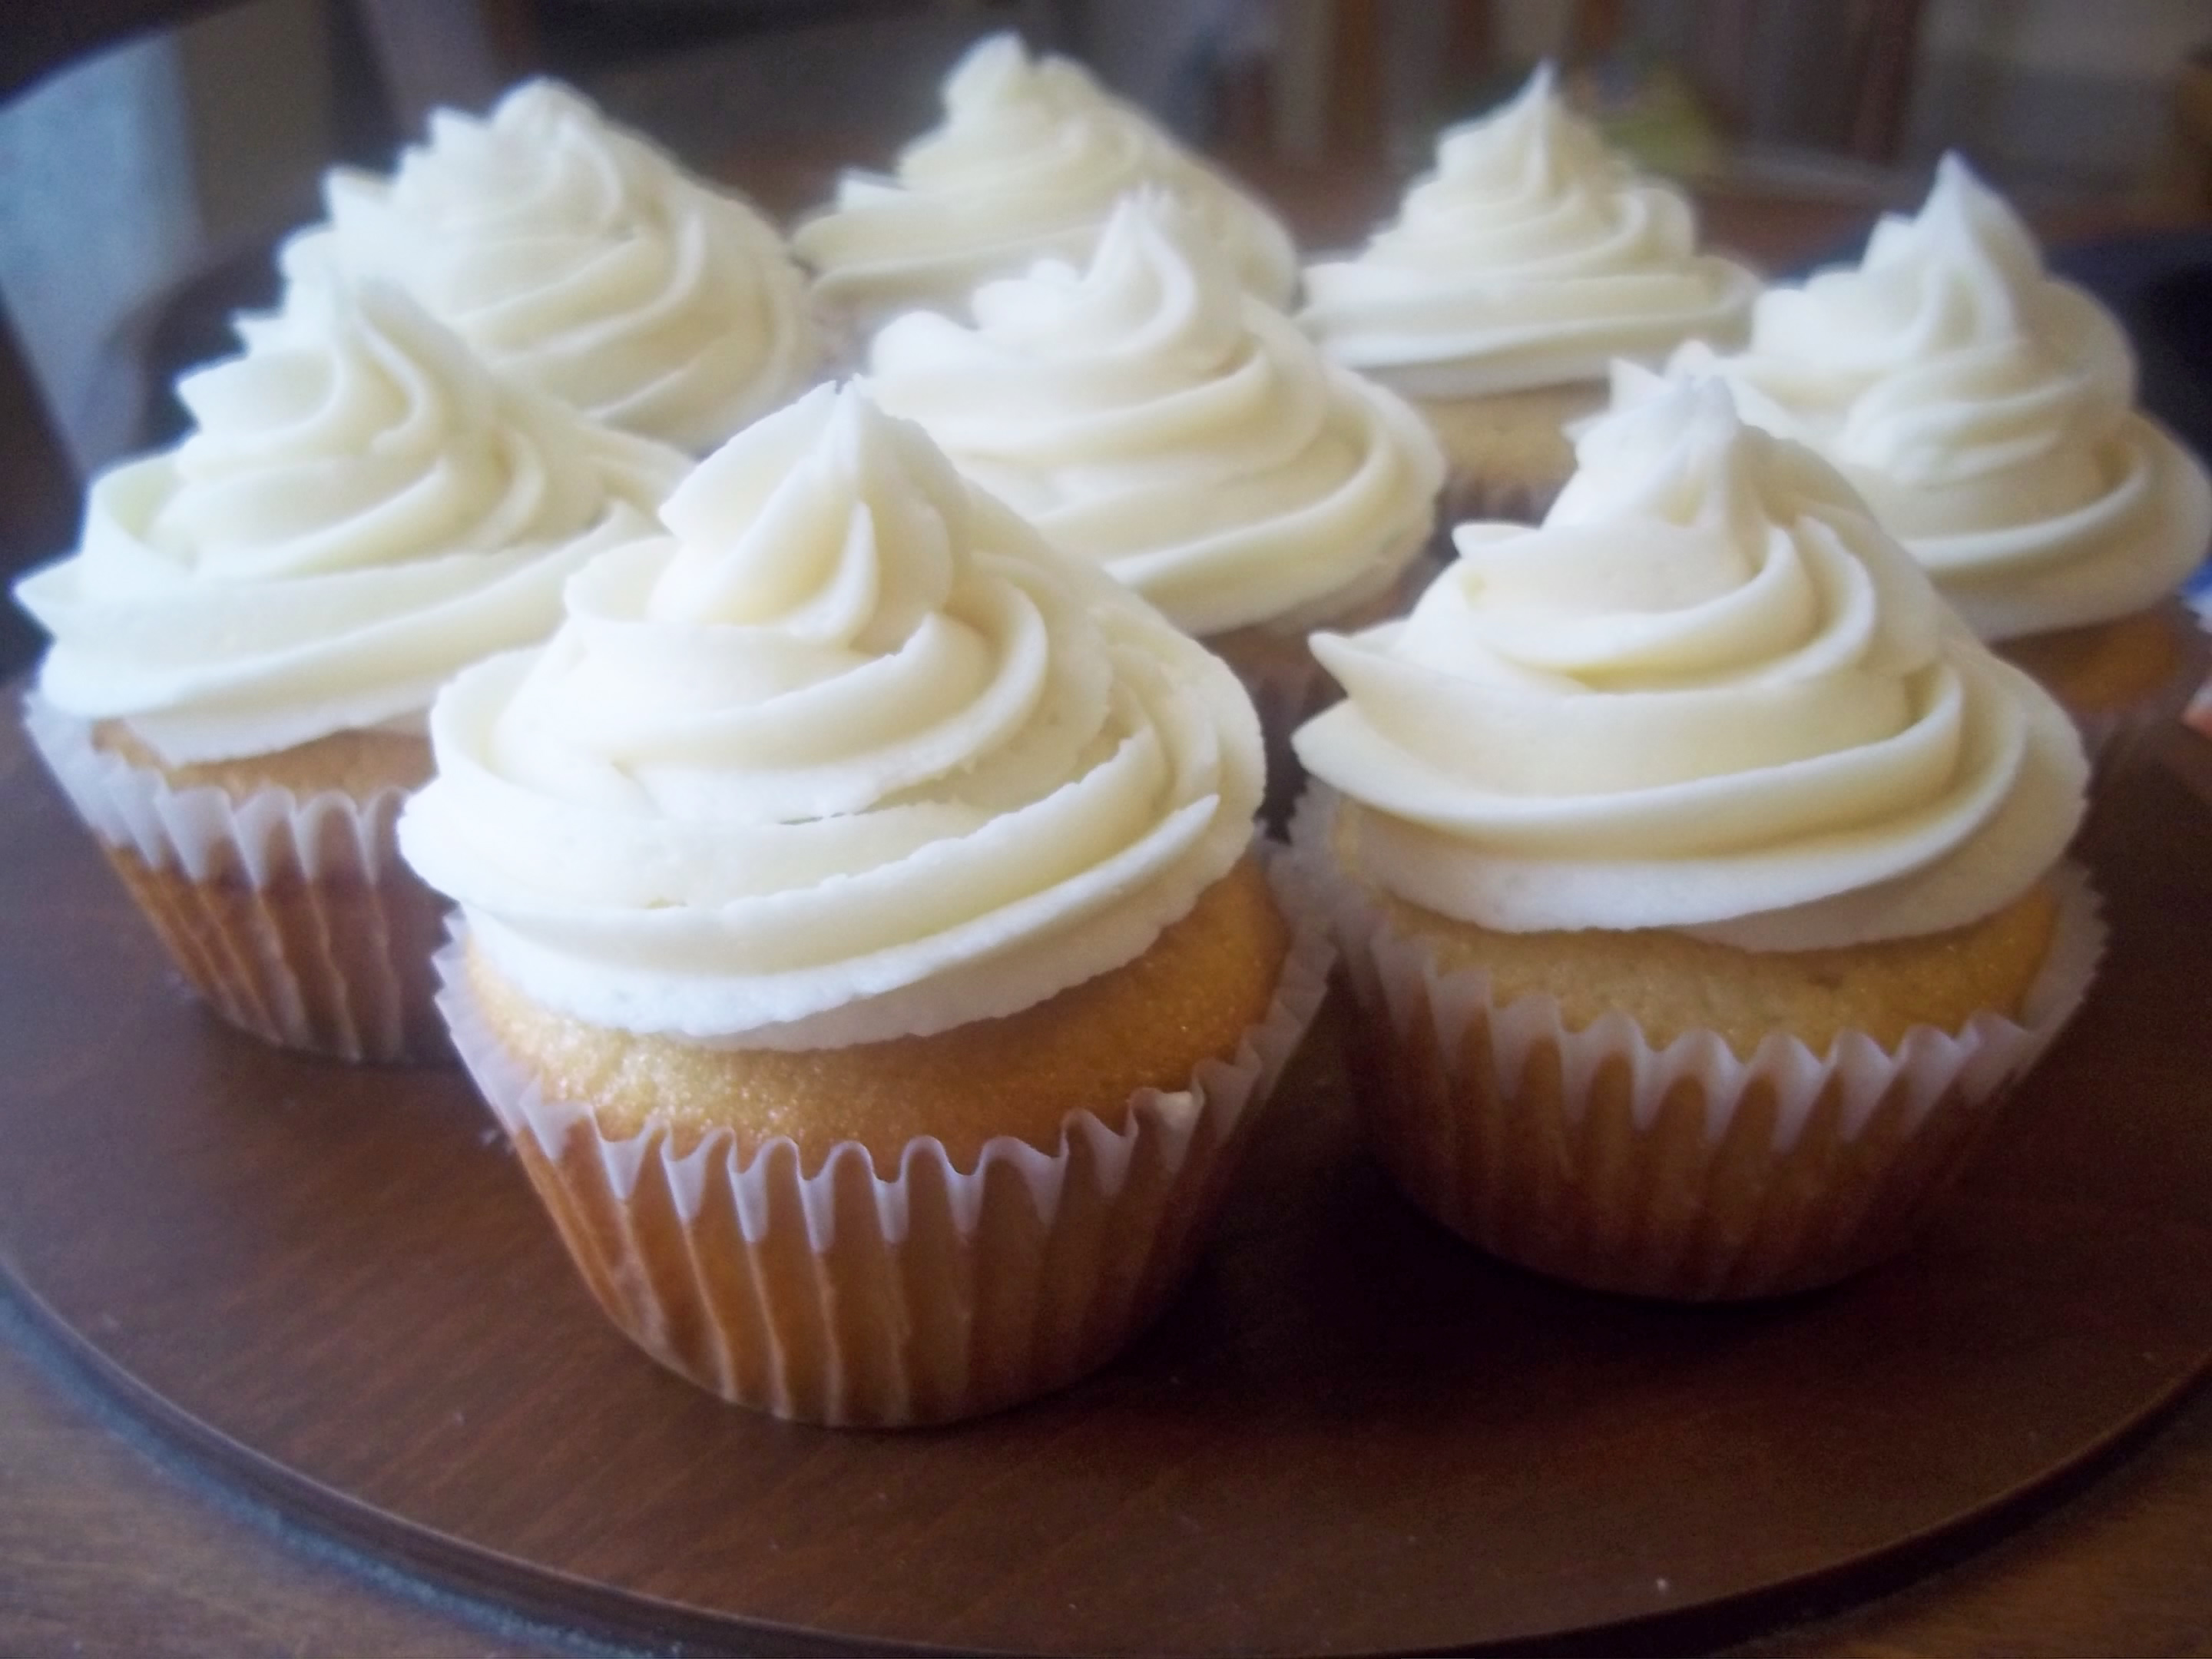 homemade vanilla cupcakes from scratch